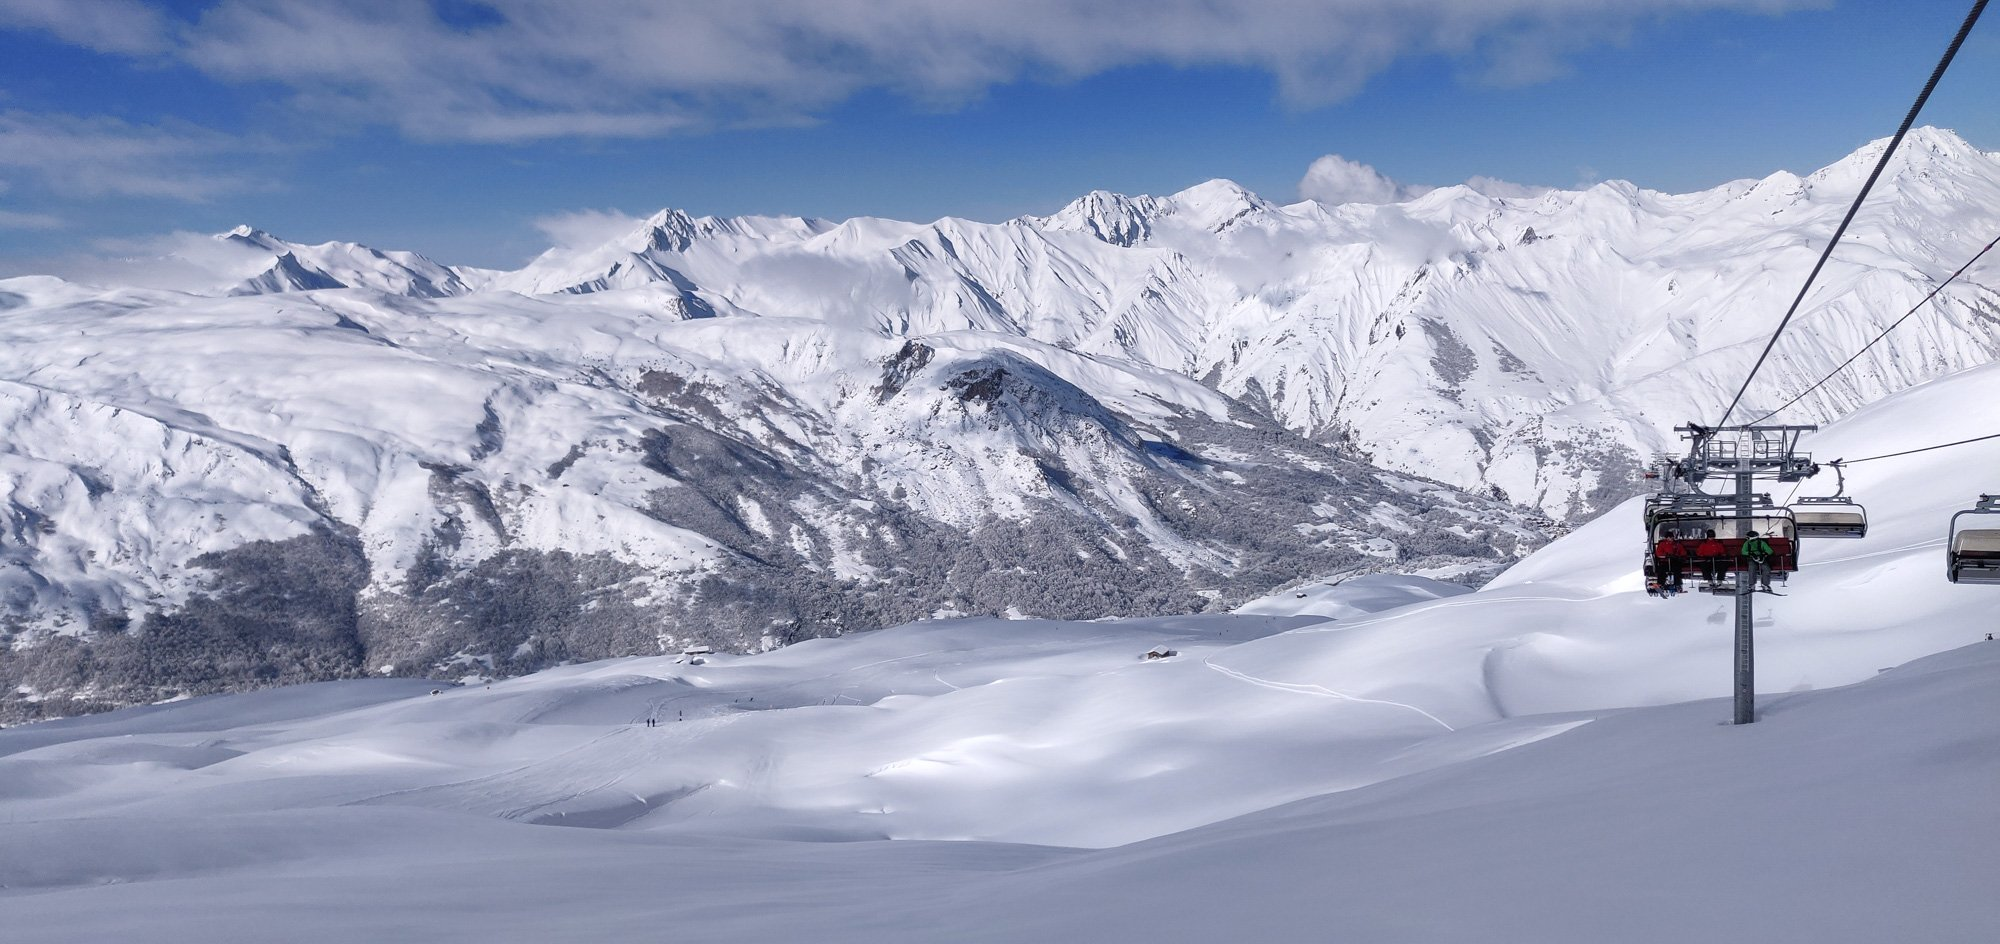 Saint Martin Express chairlift - Skiing the 3 Valleys